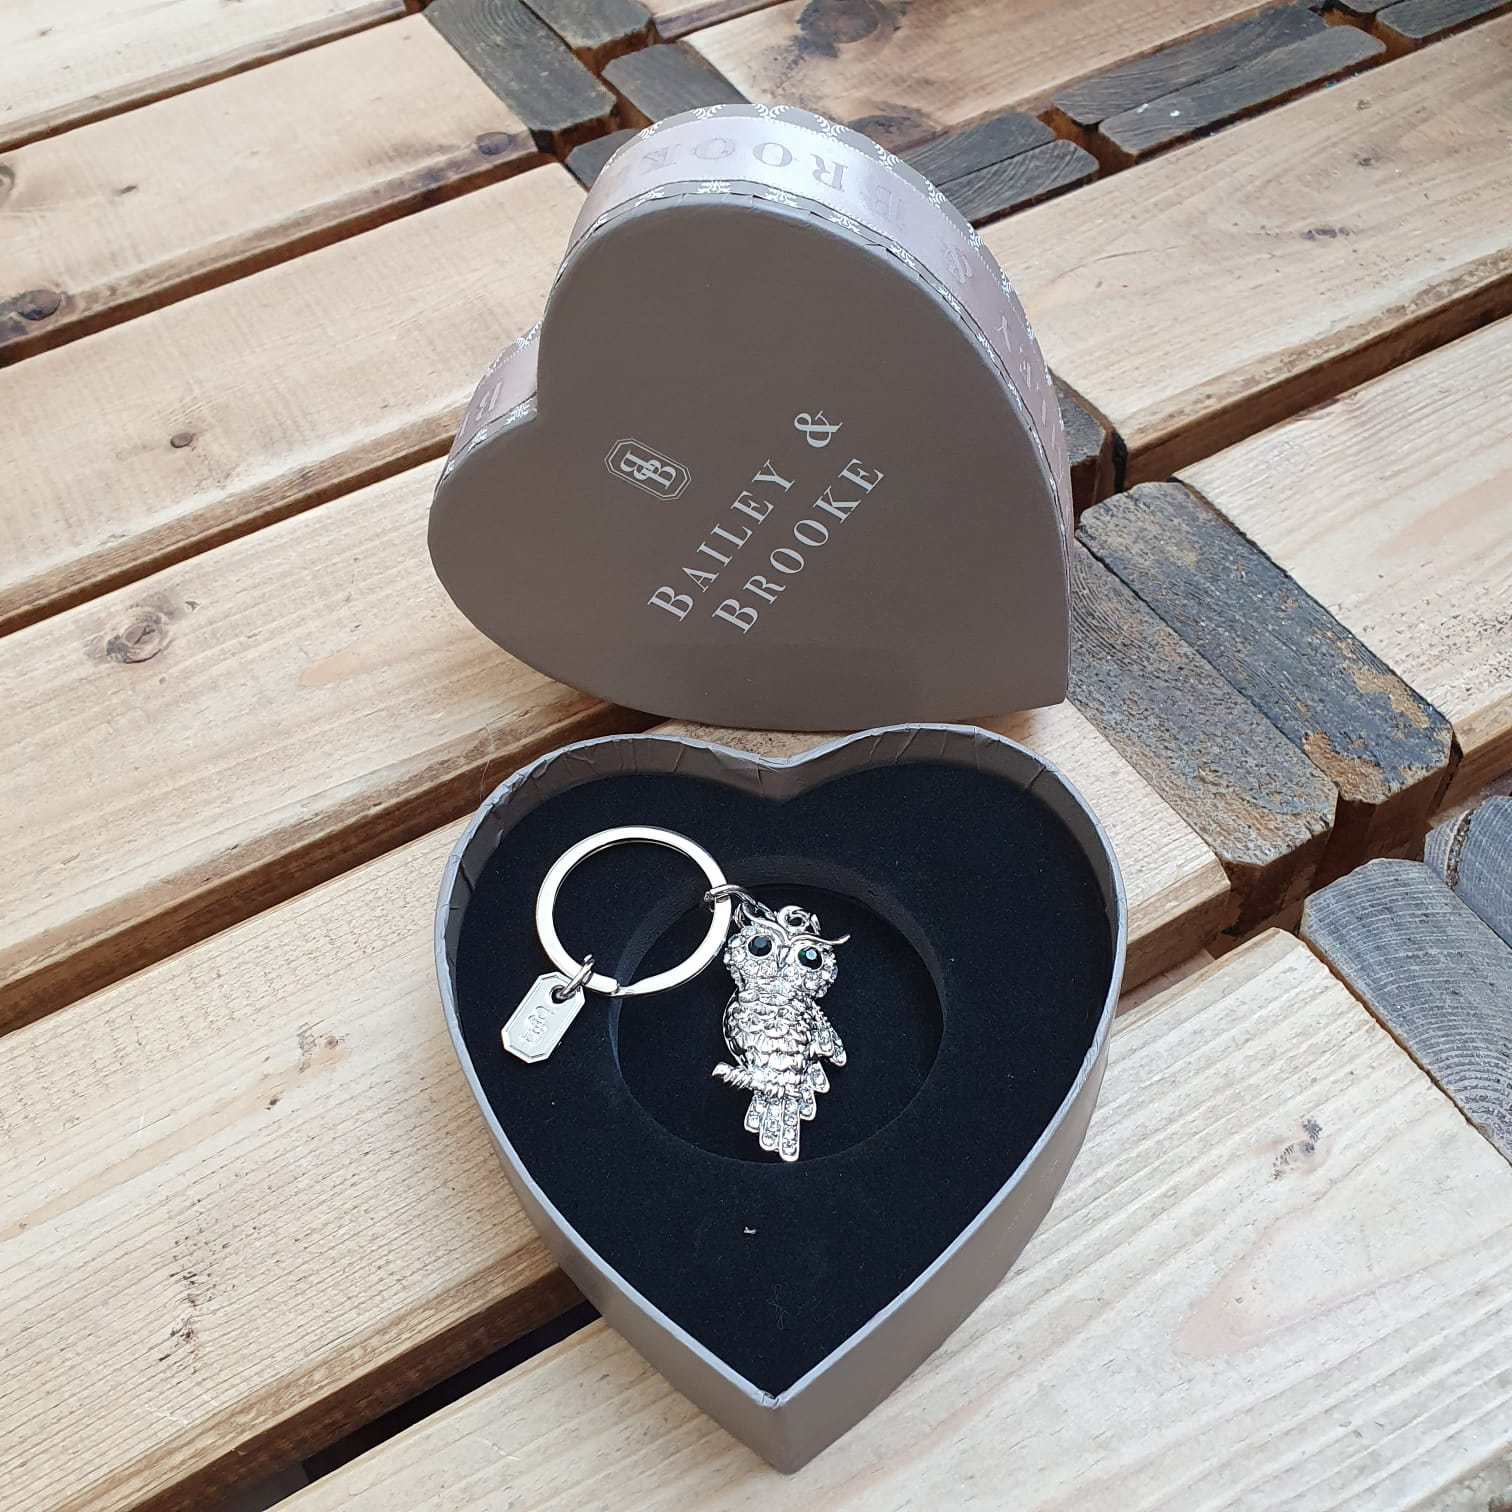 Sparkling owl Keyring by the lovely brand Bailey & Brooke.   Add some sparkle to your keys with a Luxury hanging keyring.  Beautifully presented in a Bailey & Brooke gift box. It will make a wonderful gift.